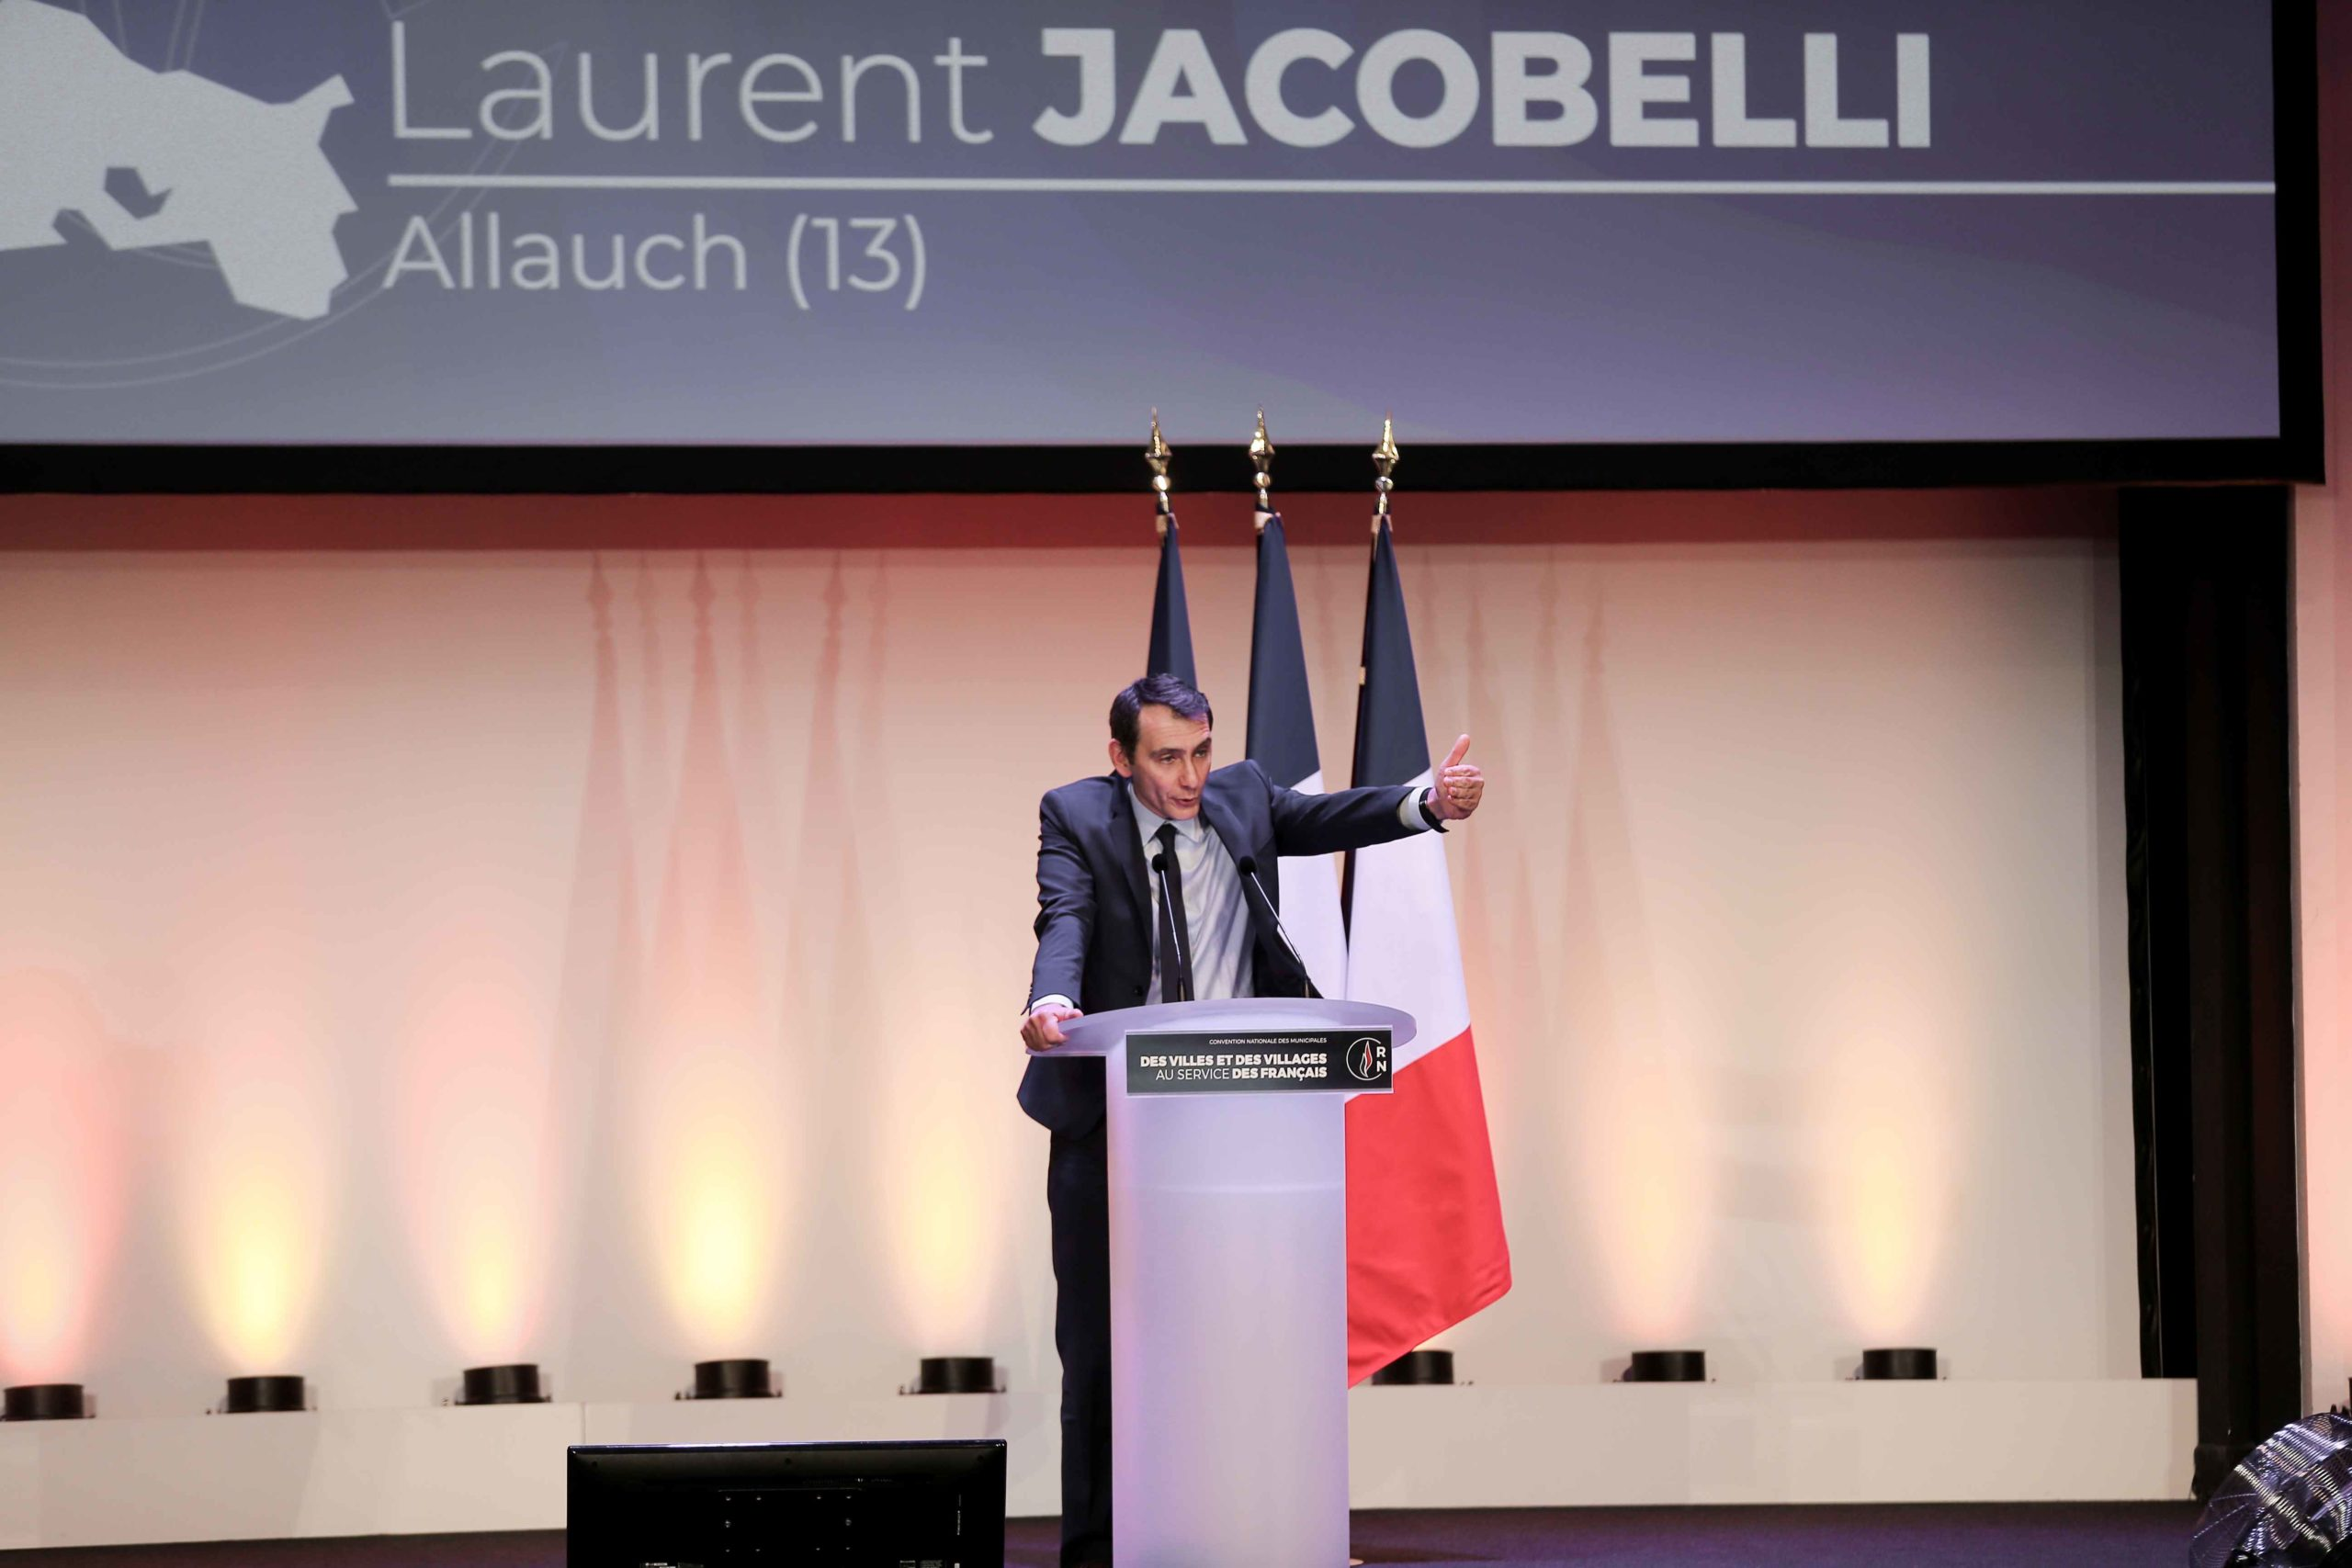 Laurent Jacobelli, the Rassemblement national (RN) candidate in the forthcoming mayoral election in Allauch (Bouches-du-Rhône), speaks in Paris, on January 12, 2020, during a meeting to launch the RN campaign candidates for the next municipal elections.